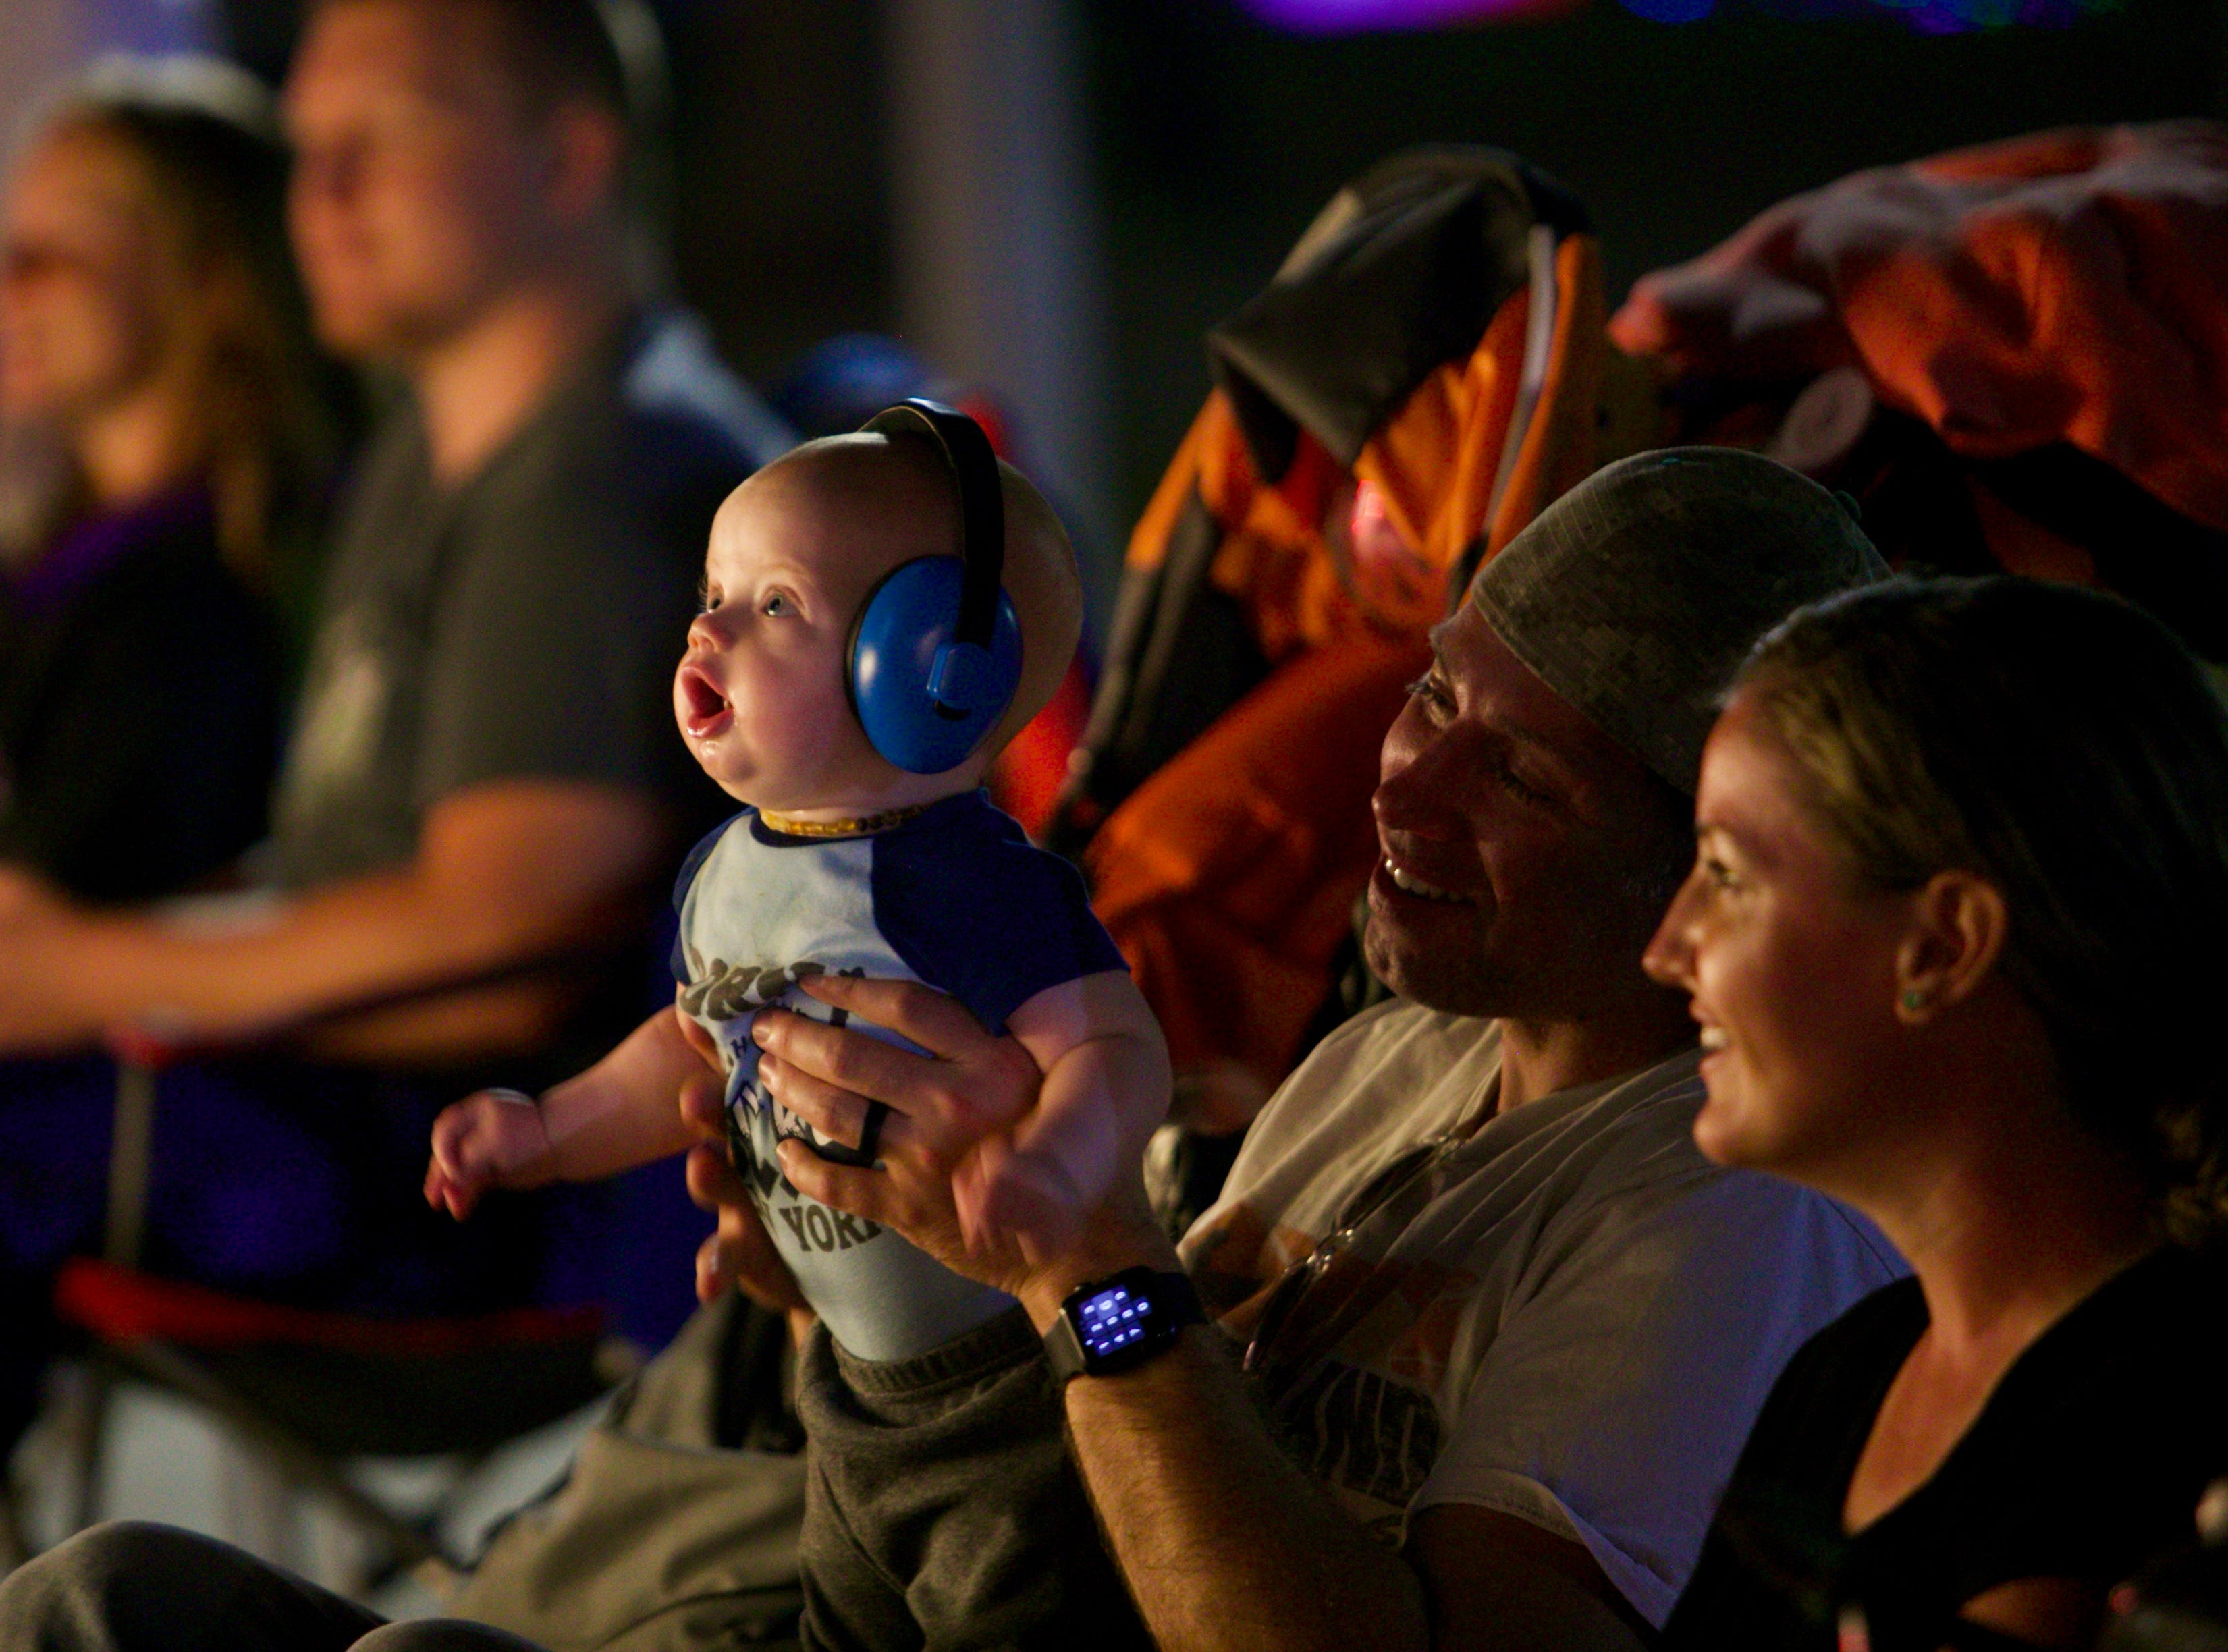 Calvin Cato, 5 months, watches the Edison Festival of Light Grand Parade with his parents Steven and Kiersten Cato.